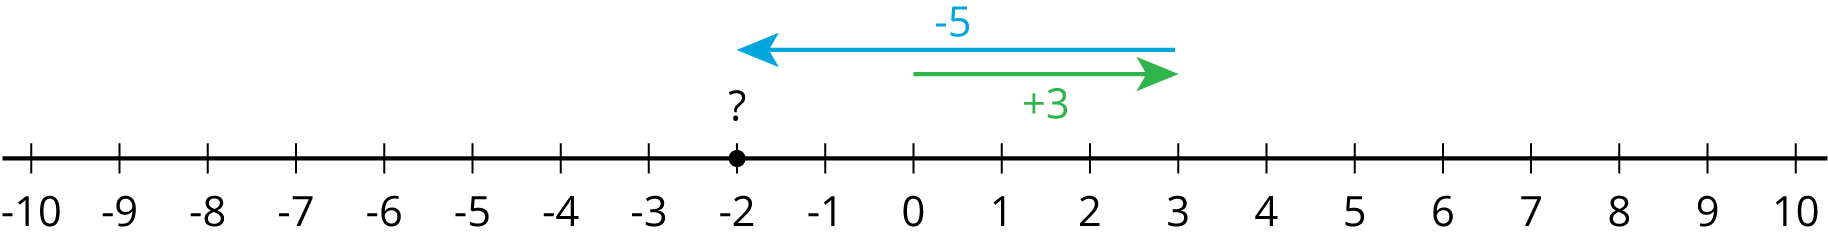 """A number line with the numbers negative 10 through 10 indicated. An arrow starts at 0, points to the right, ends at 3, and is labeled """"plus 3"""". A second arrow starts at 3, points to the left, ends at negative two, and is labeled """"minus 5"""". There is a solid dot and a question mark labeled at 2."""